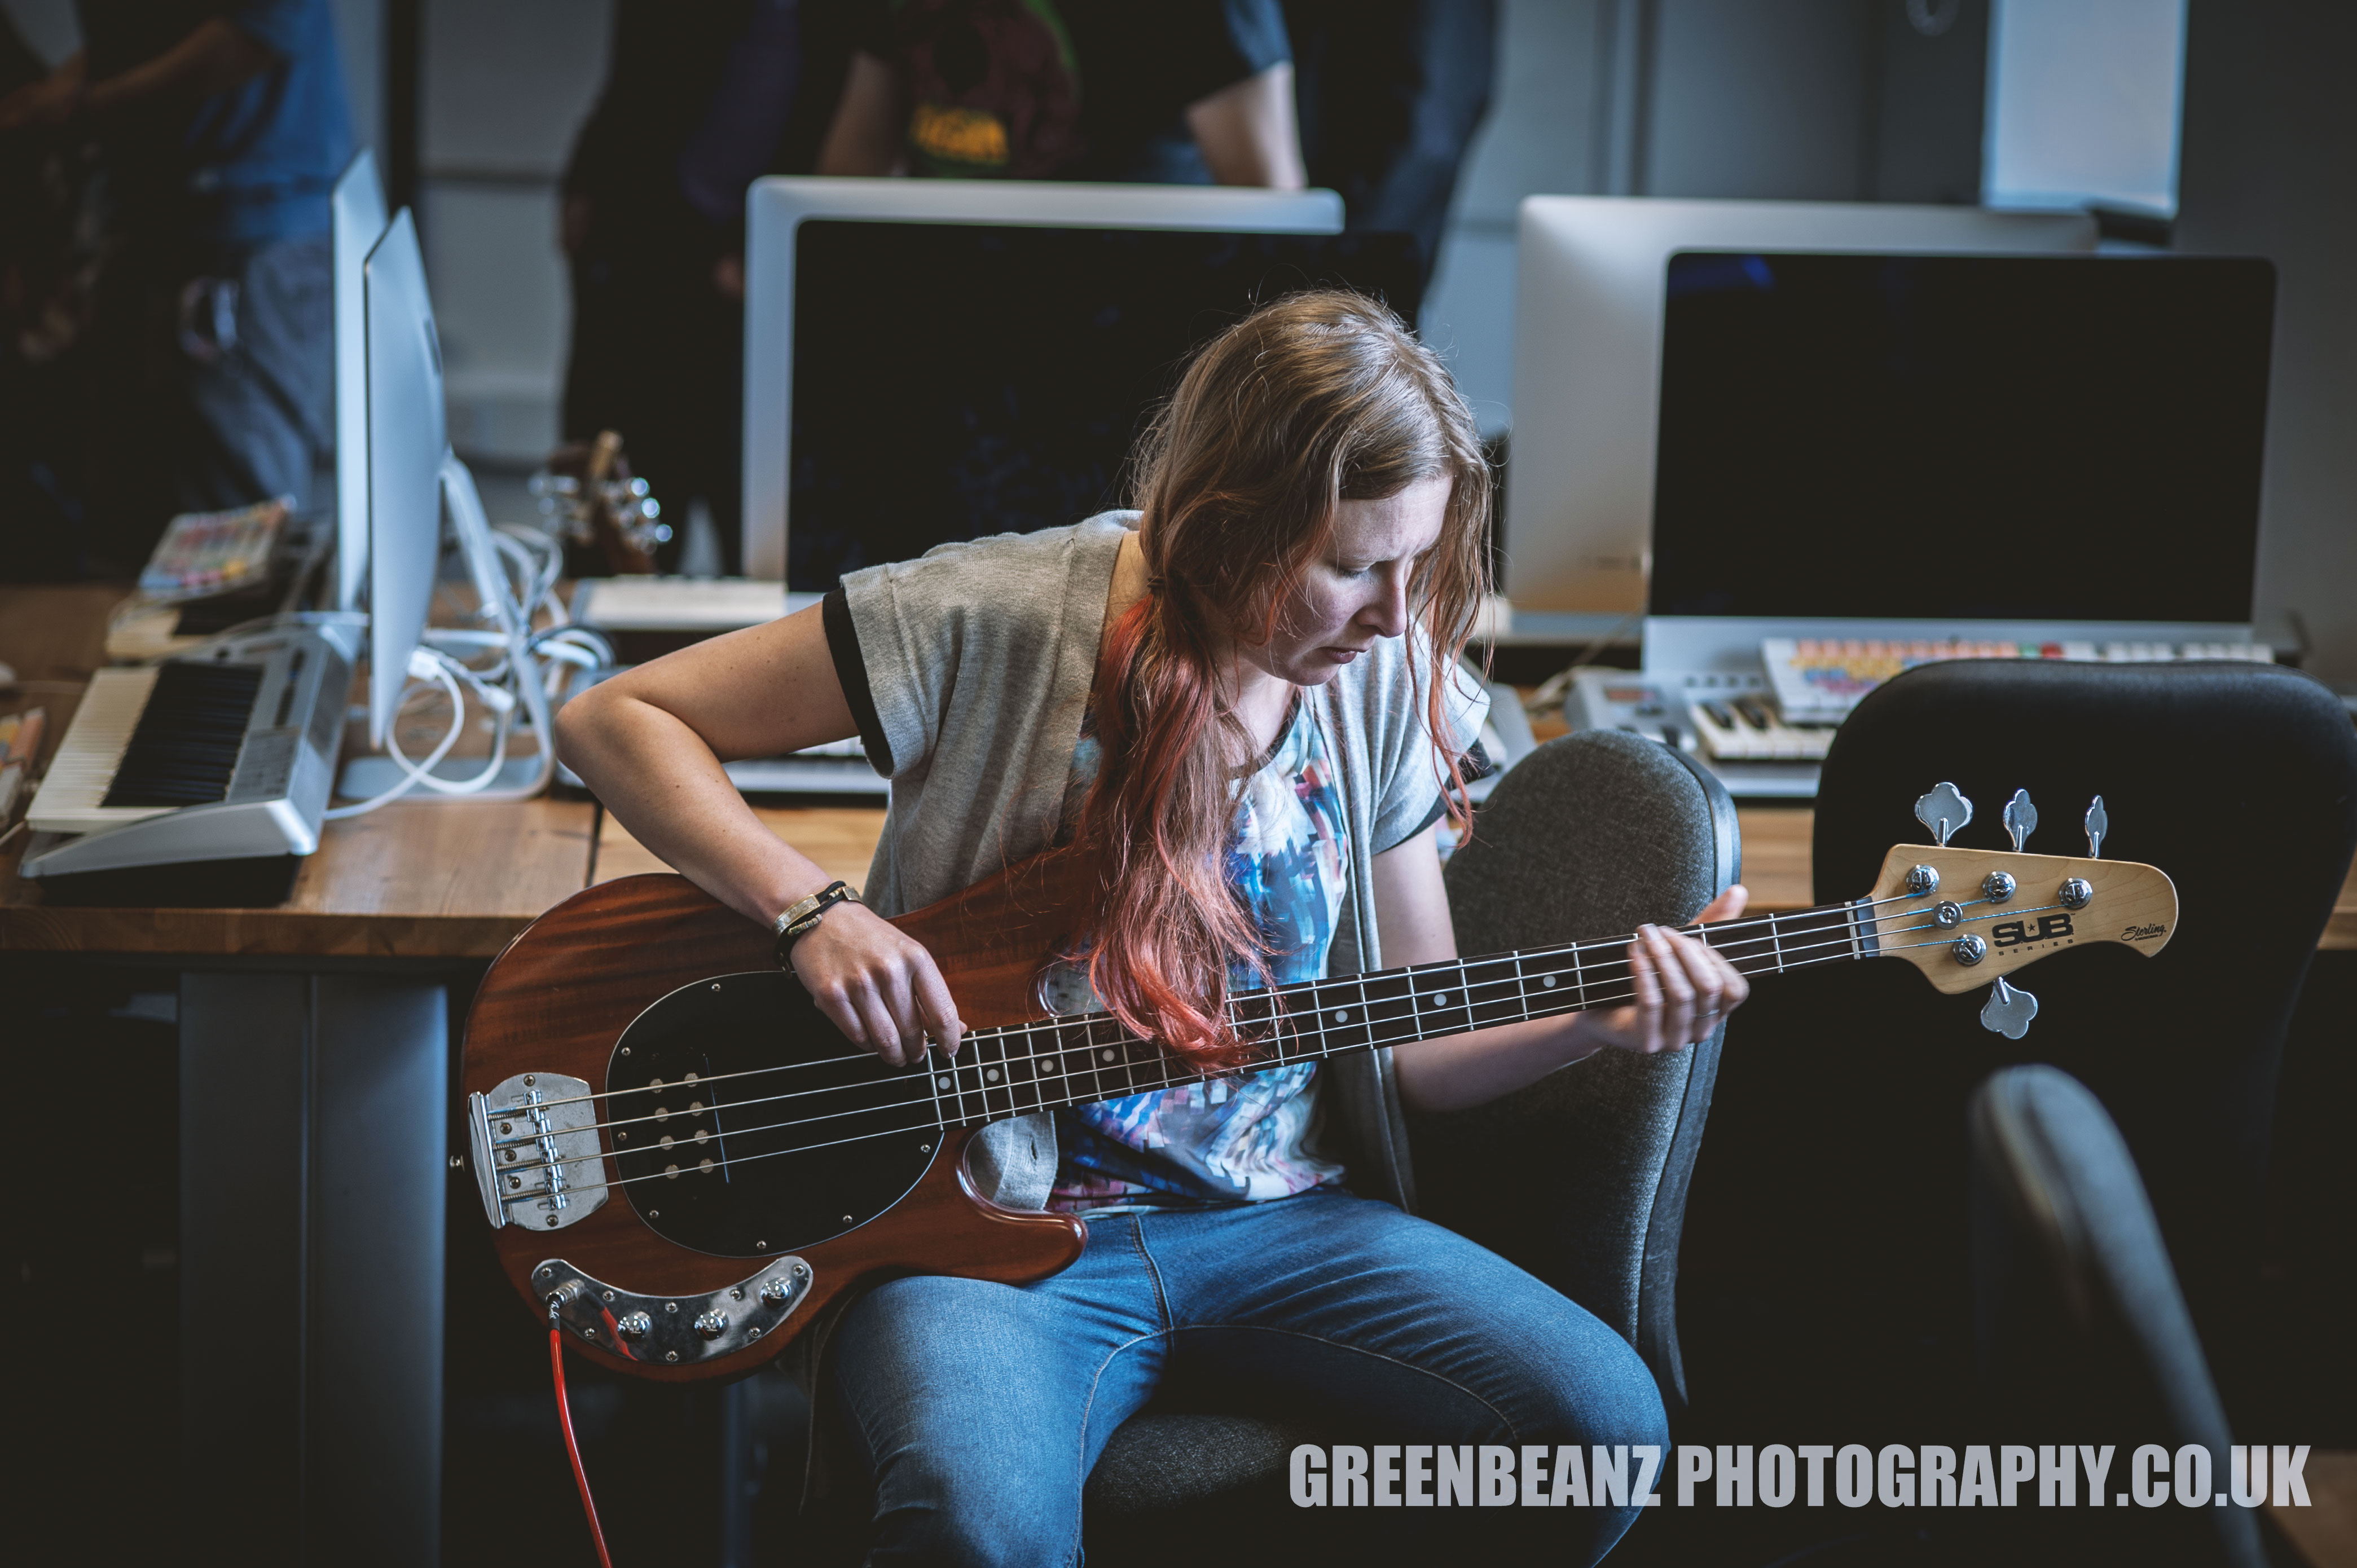 Photograph of Bass Player Helen in Plymouth Recording Studio